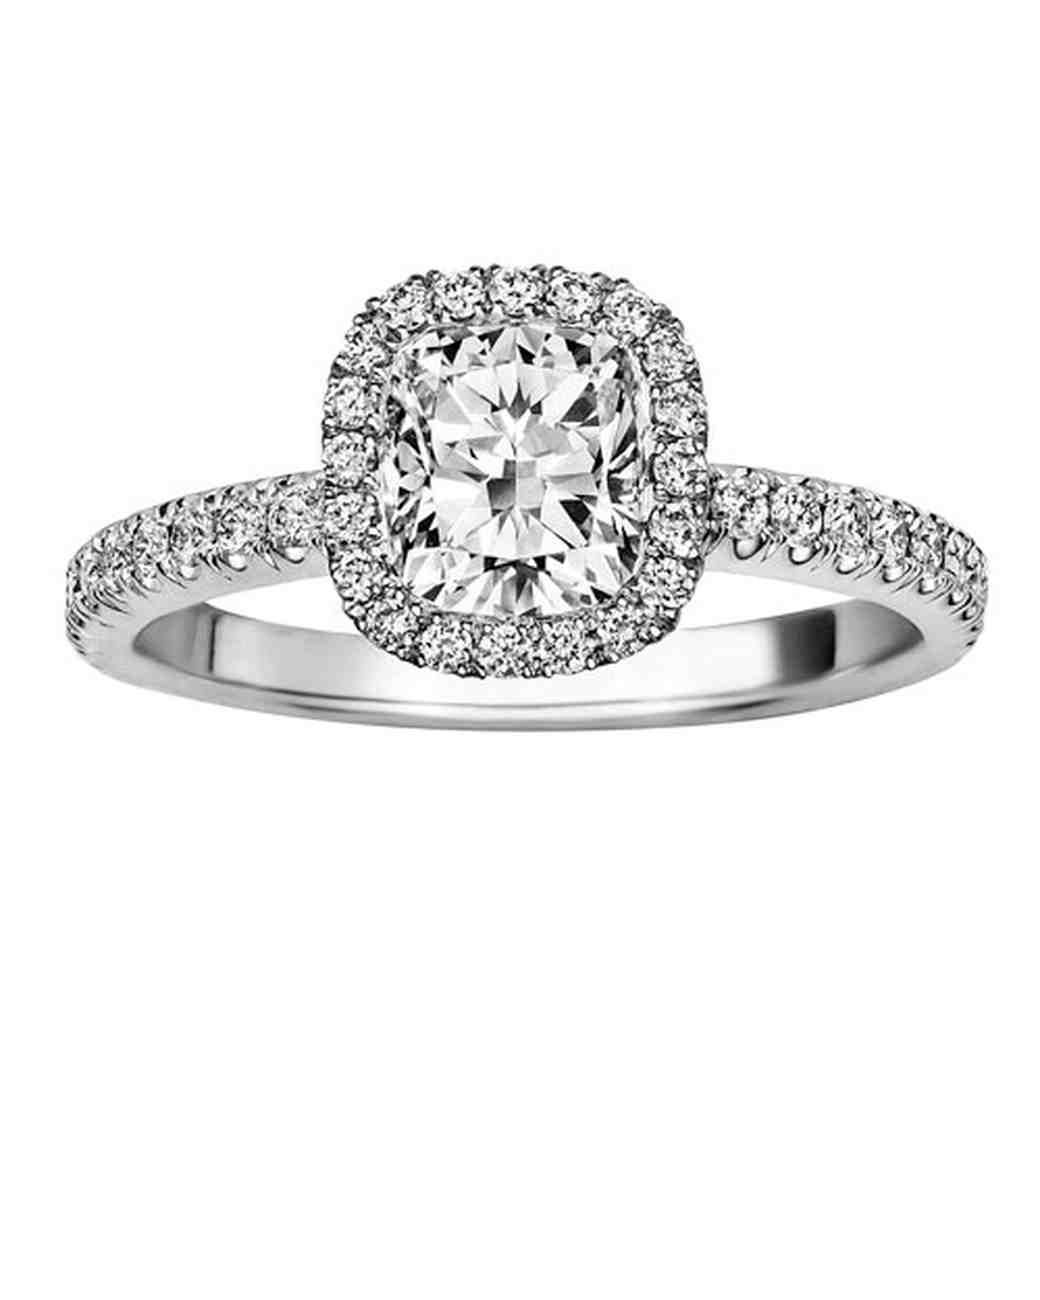 CushionCut Diamond Engagement Rings Martha Stewart Weddings